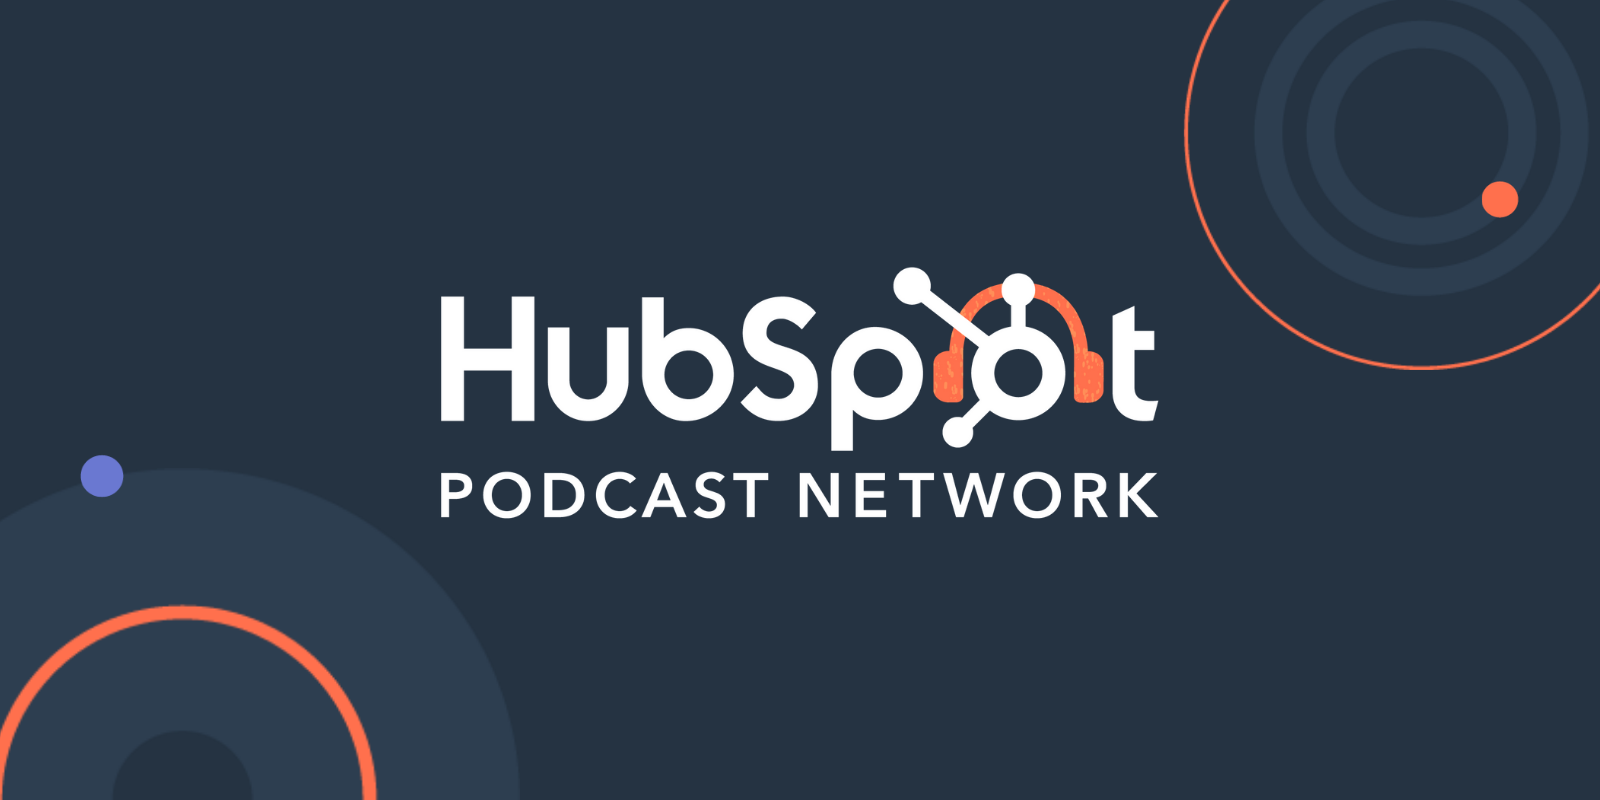 HubSpot Launches New Podcast Network for Business Professionals to Listen, Learn, and Grow Their Companies